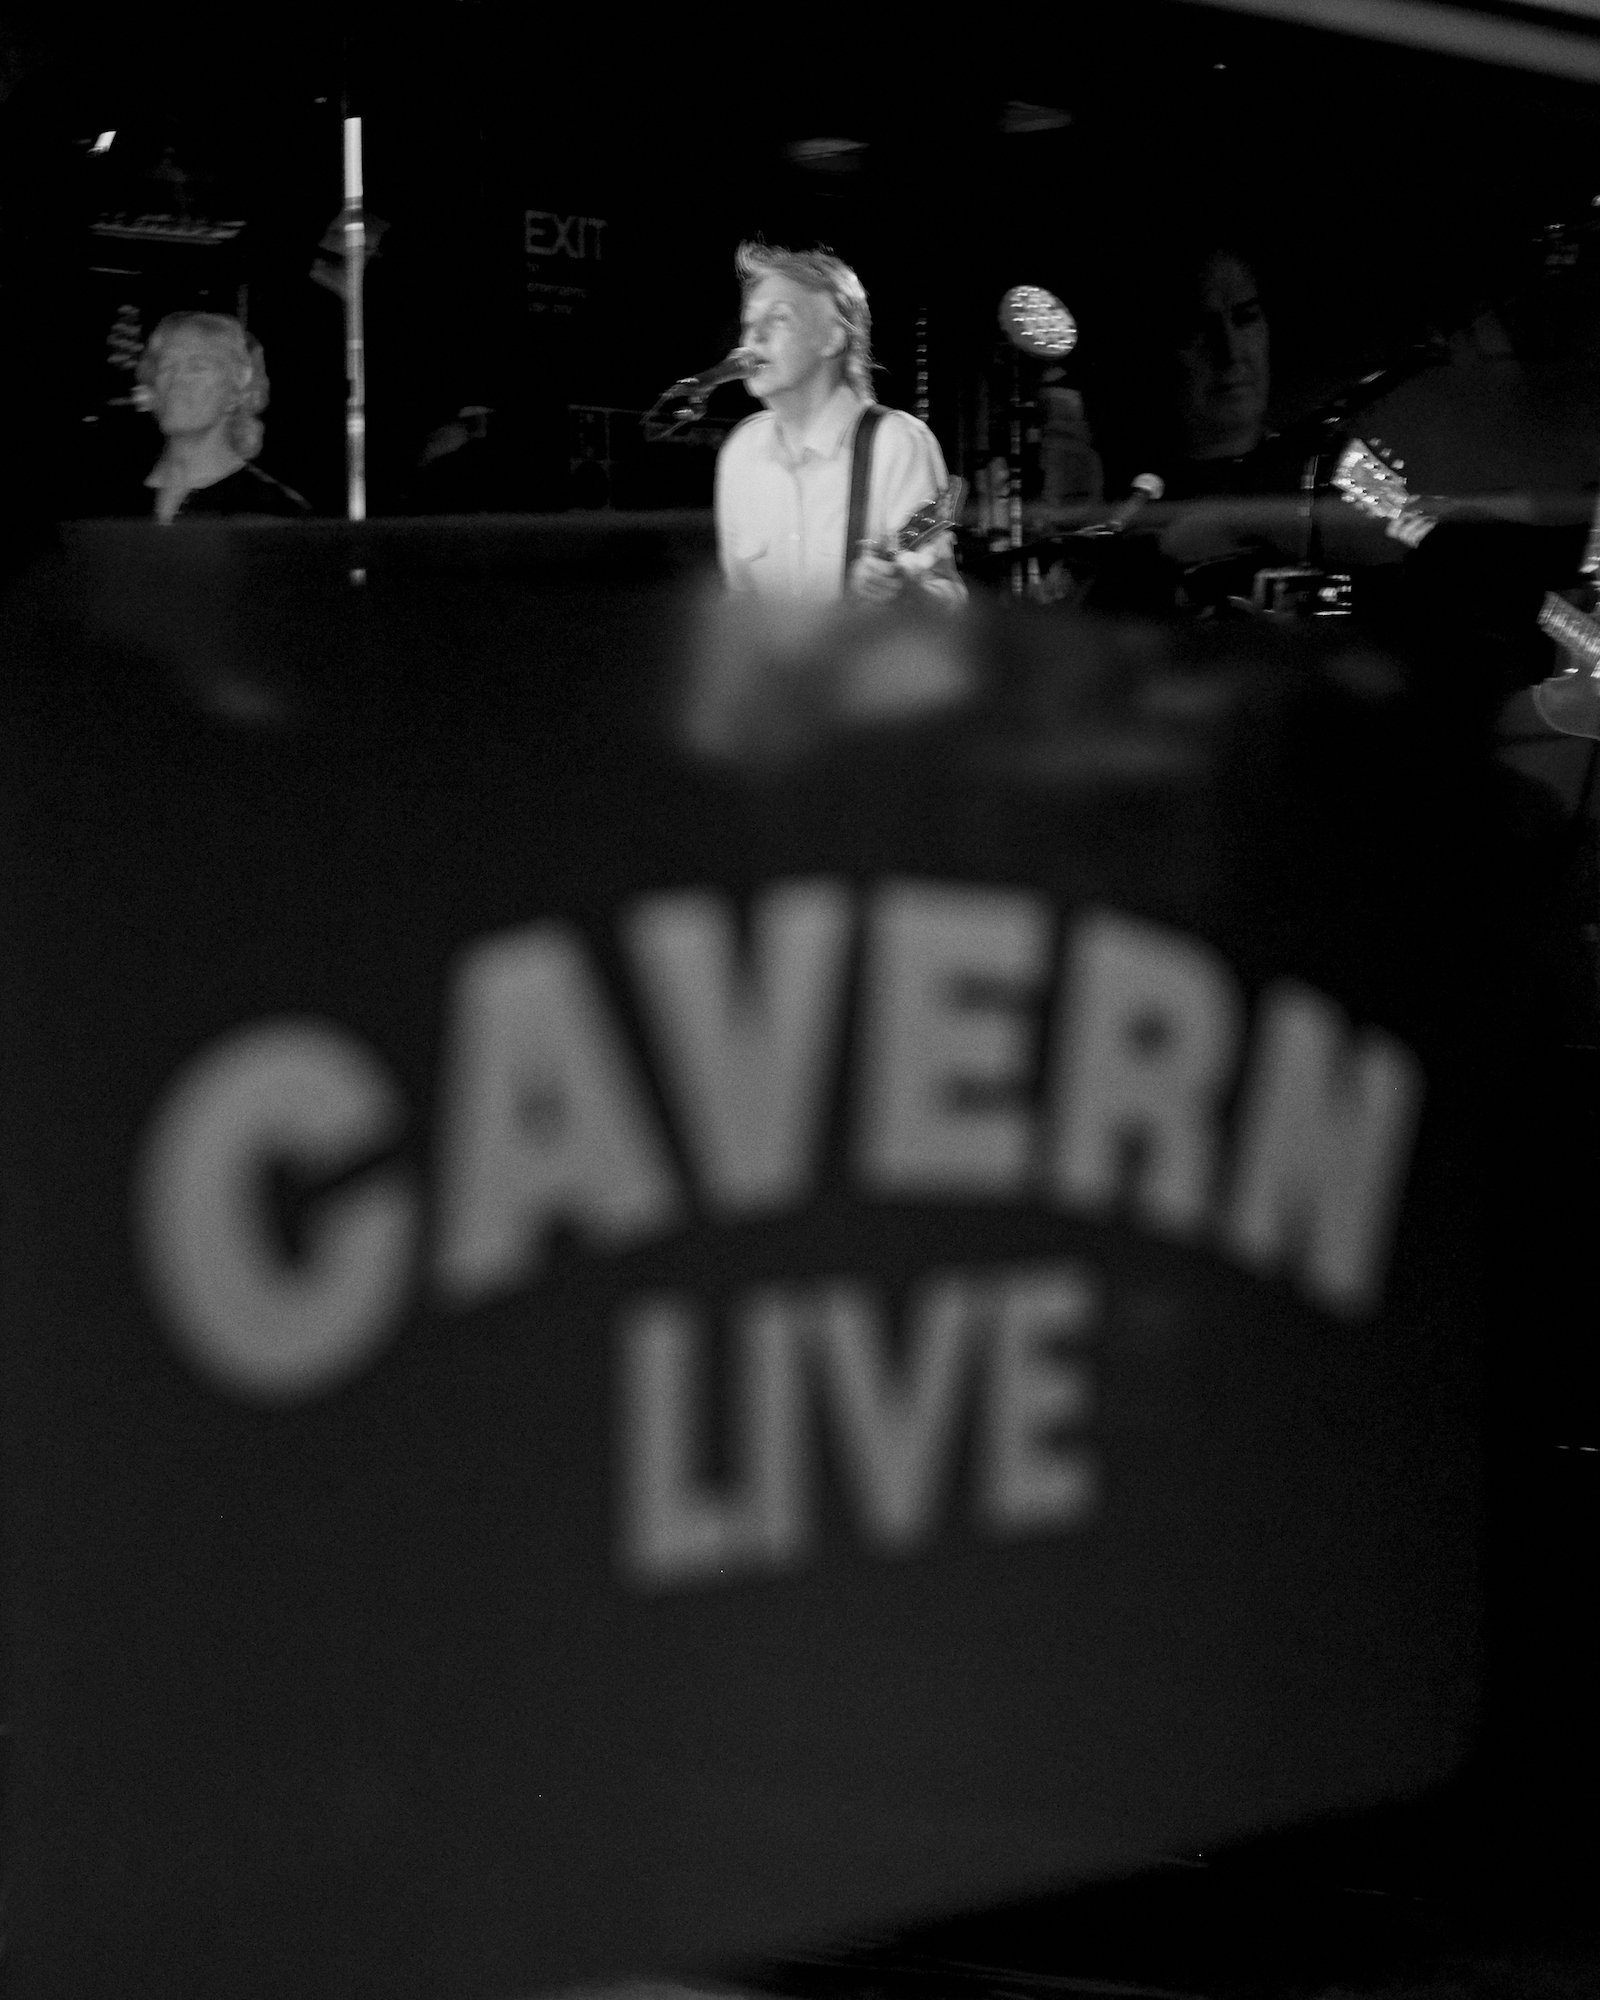 Paul McCartney relembra início de carreira com show surpresa no Cavern Club